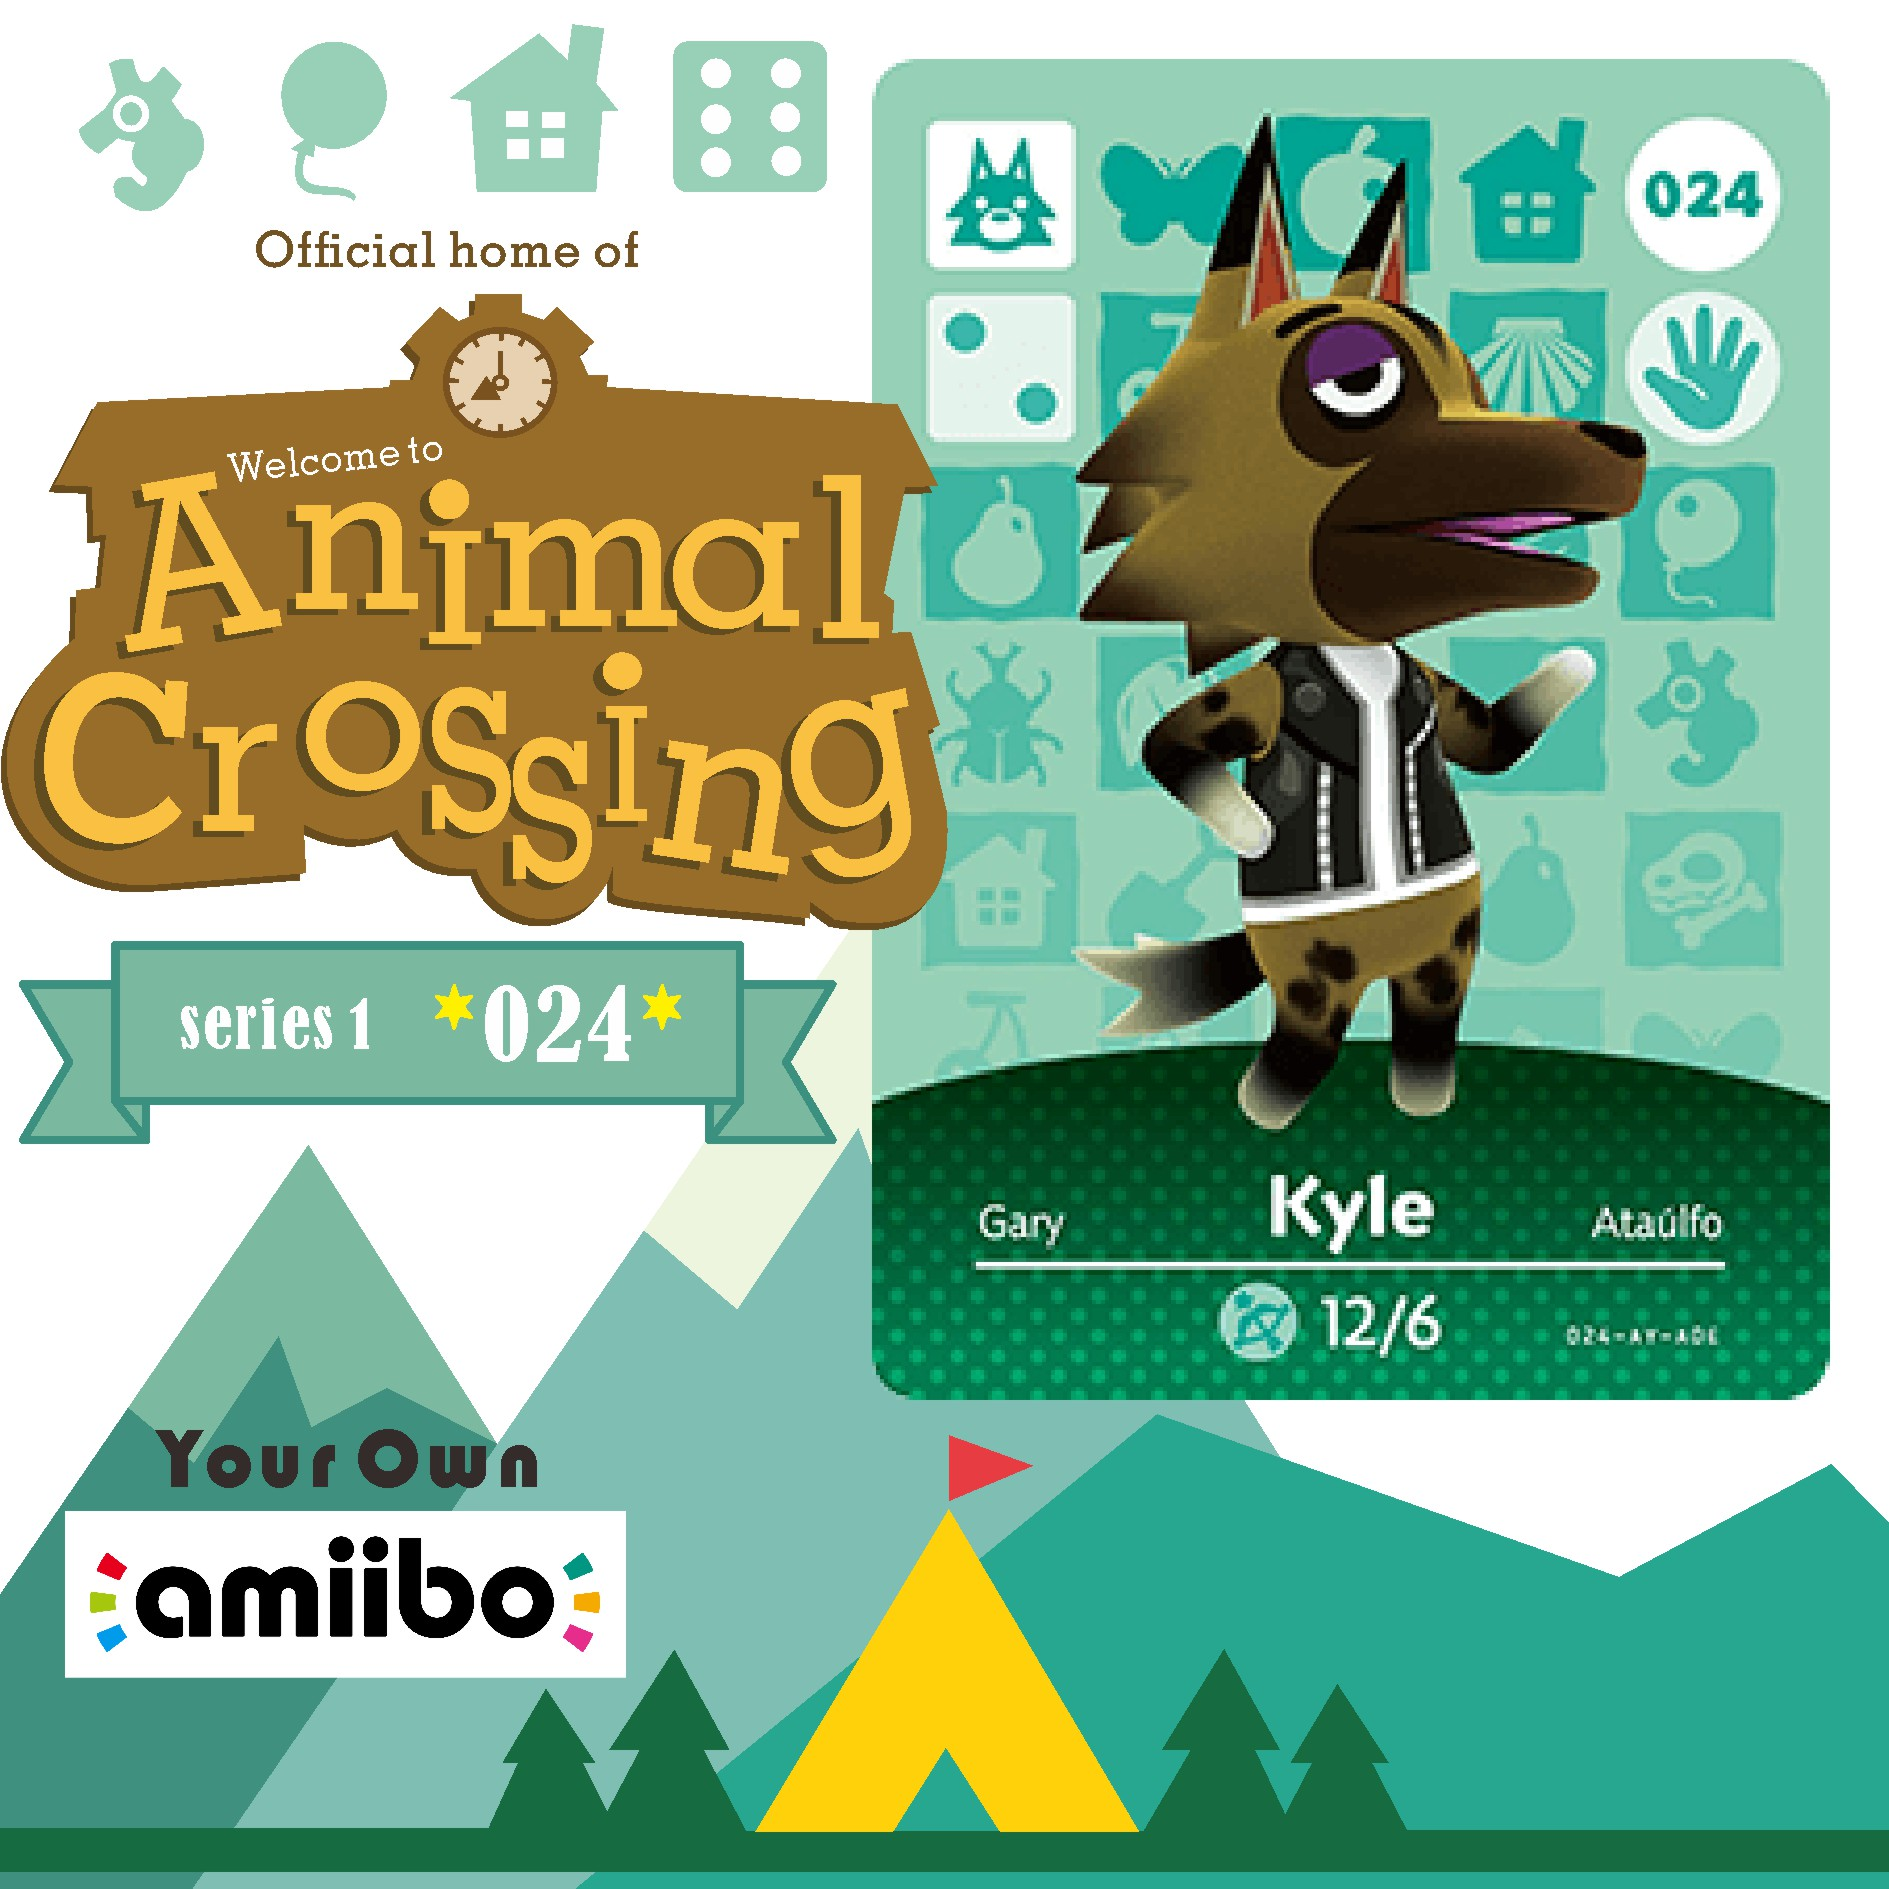 024 Kyle Welcome Amiibo Kyle  Cross Game Card Animal Crossing Card Amiibo Card Kyle 024 Work For Ns Games Amiibo 024 Kyle